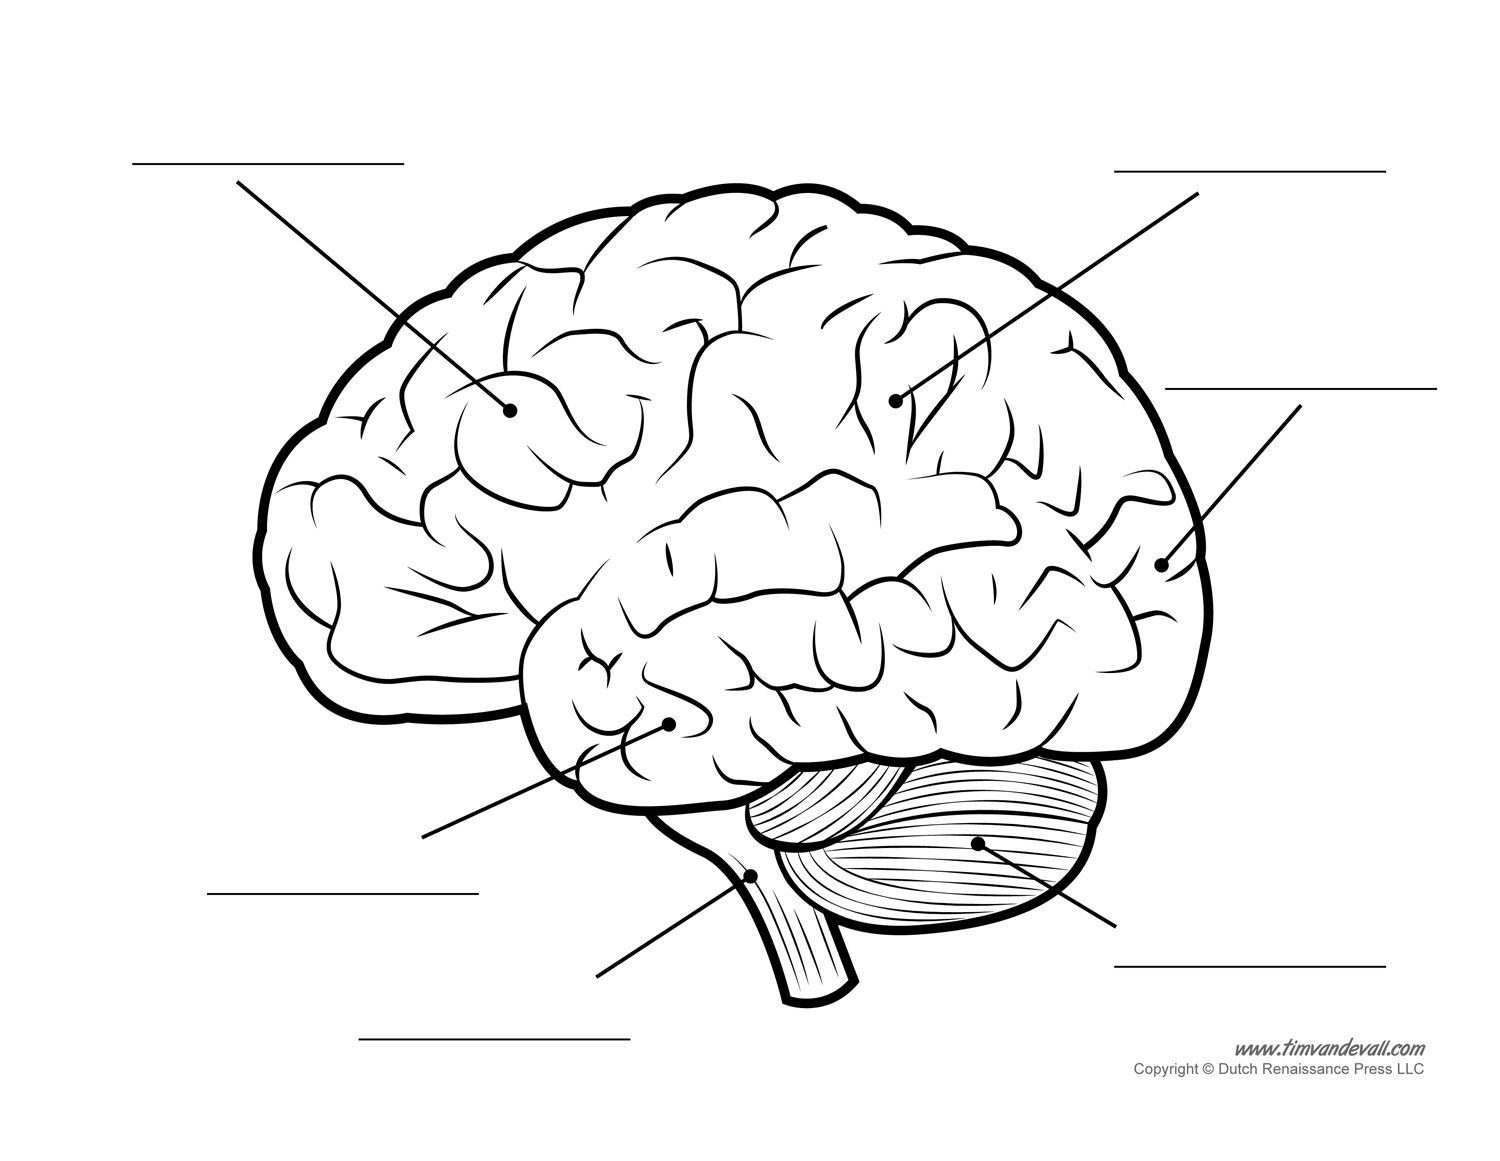 Labeled Diagram Of The Human Brain Labeled Diagram Of